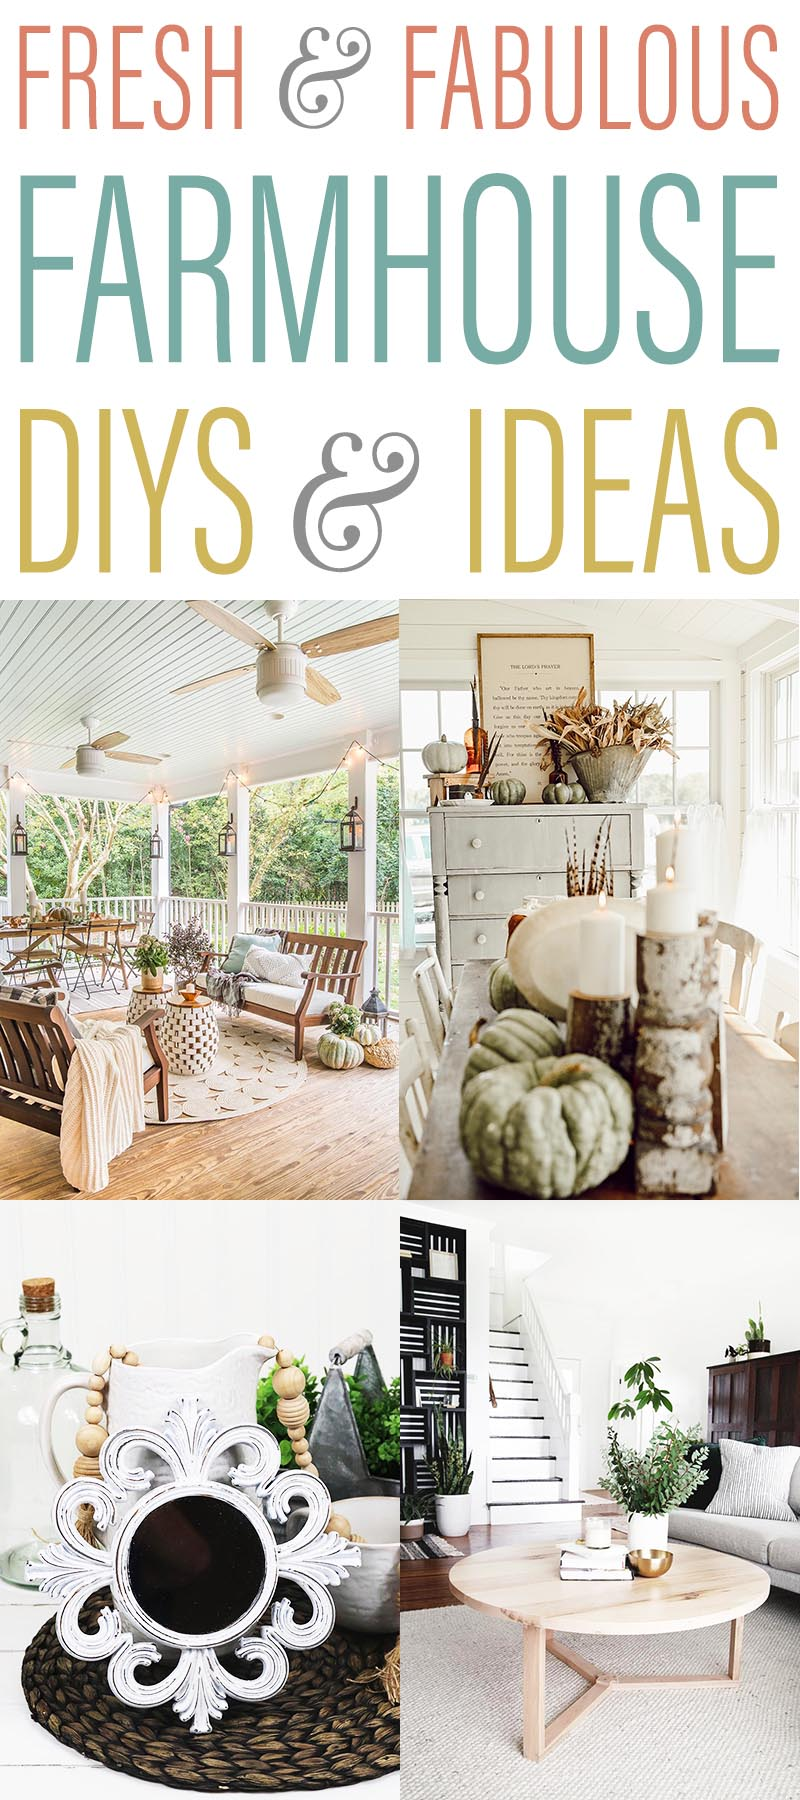 Fabulous and Fresh Farmhouse DIYS and Ideas are waiting to inspire you to create. All the newest happenings in the Farmhouse World all in one place to enjoy!